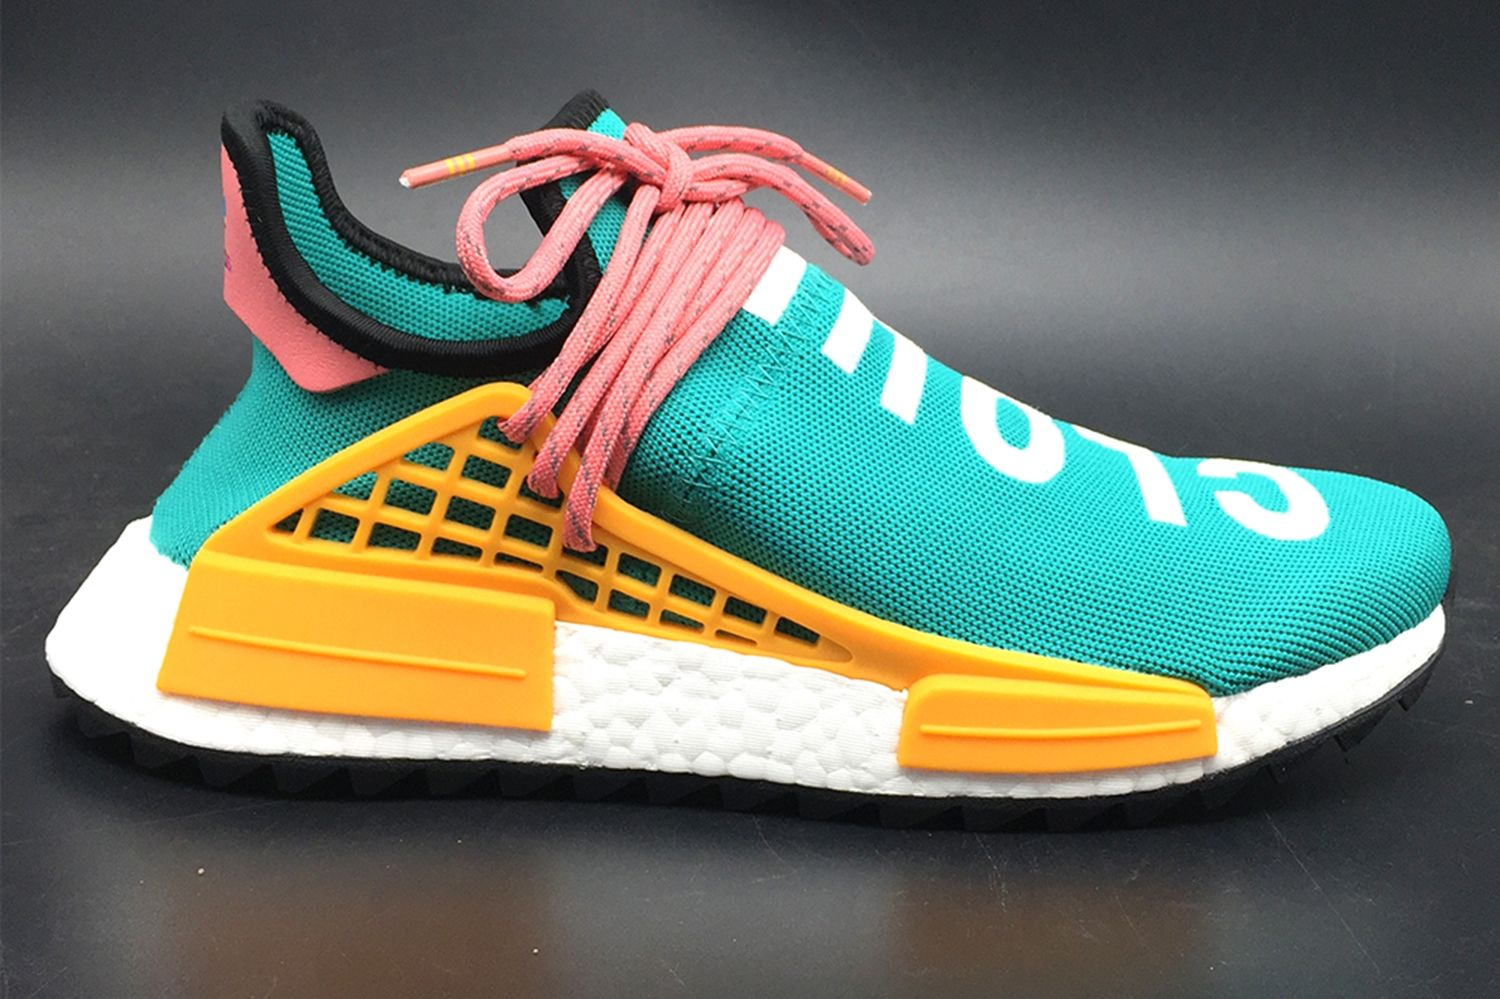 2b5d254e7 Pharrell Williams and Adidas Originals teamed up to build Human Race NMD Hu  with personality publicity of the upper text and originated from the NMD  fashion ...